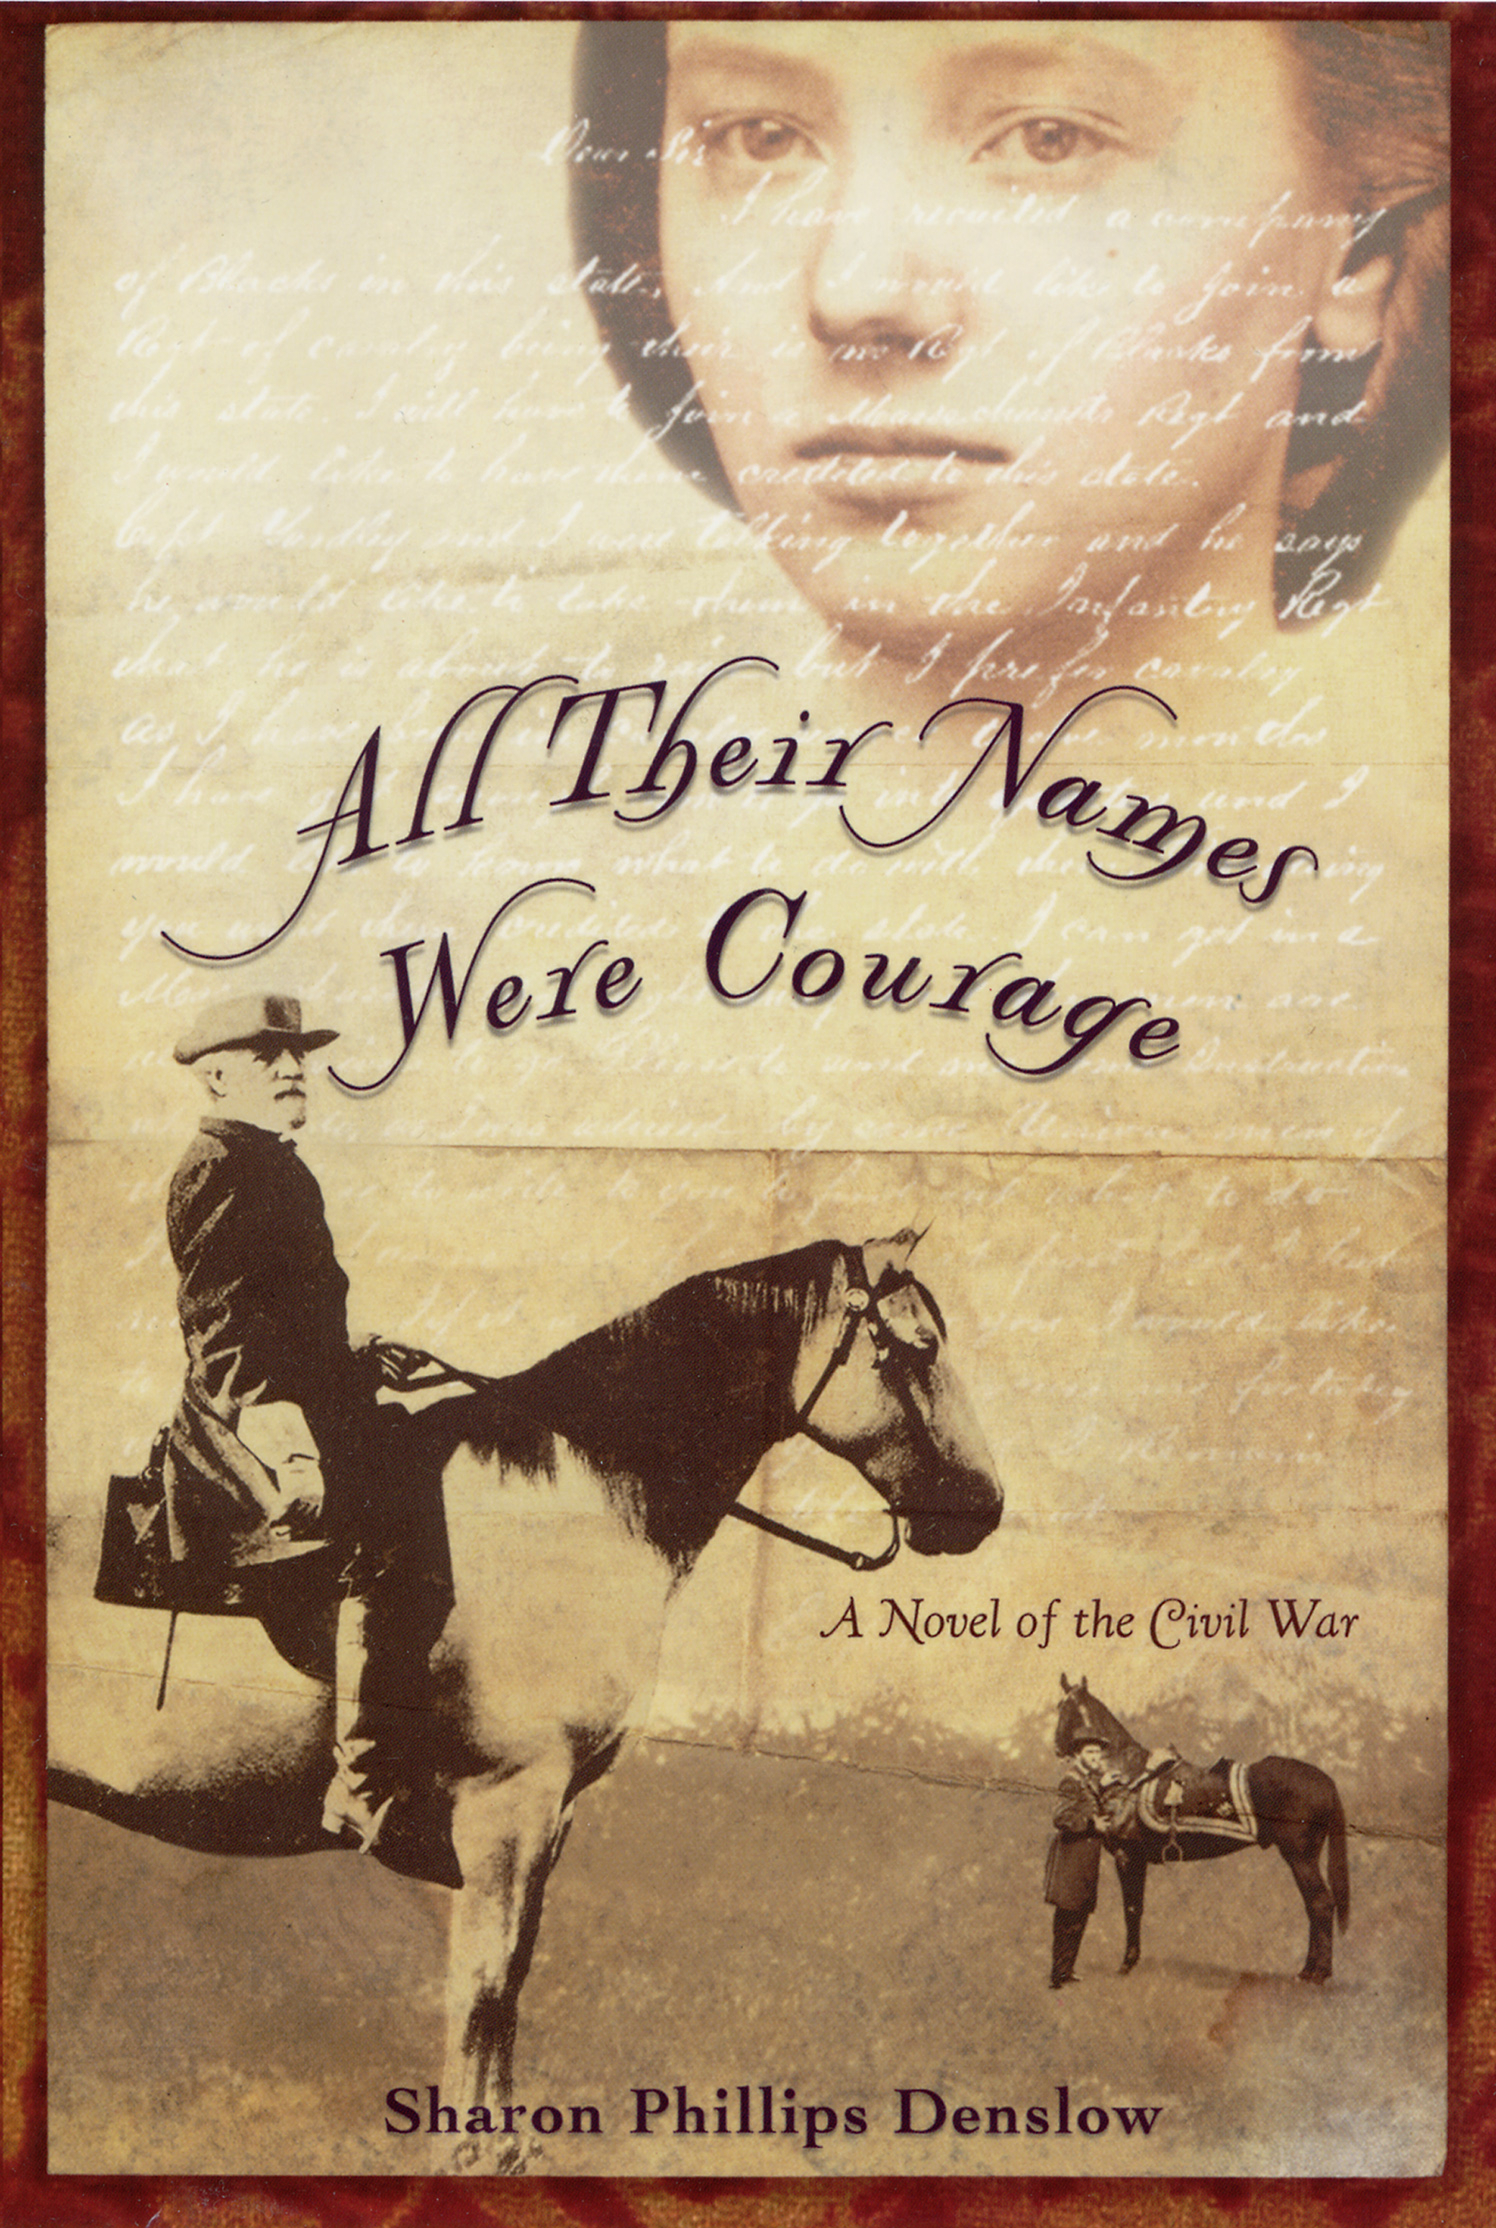 All Their Names Were Courage Sharon Phillips Denslow Harper Collins